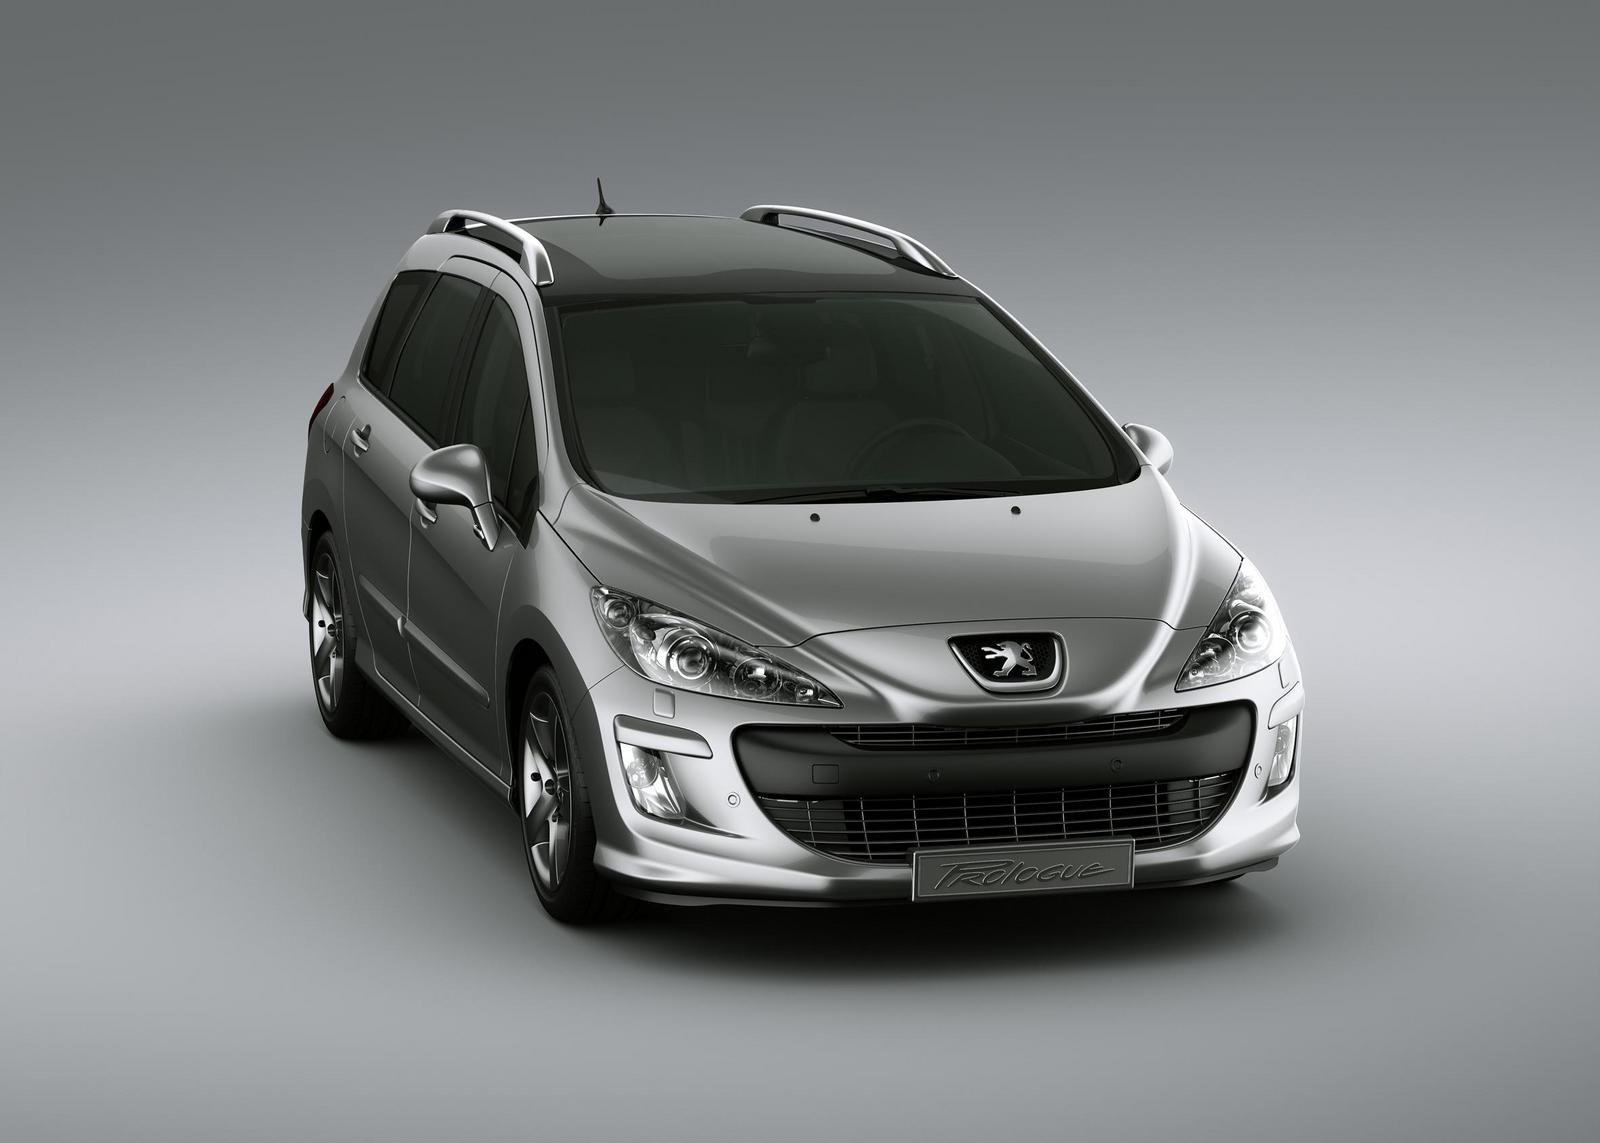 2008 peugeot 308 sw prologue review top speed. Black Bedroom Furniture Sets. Home Design Ideas